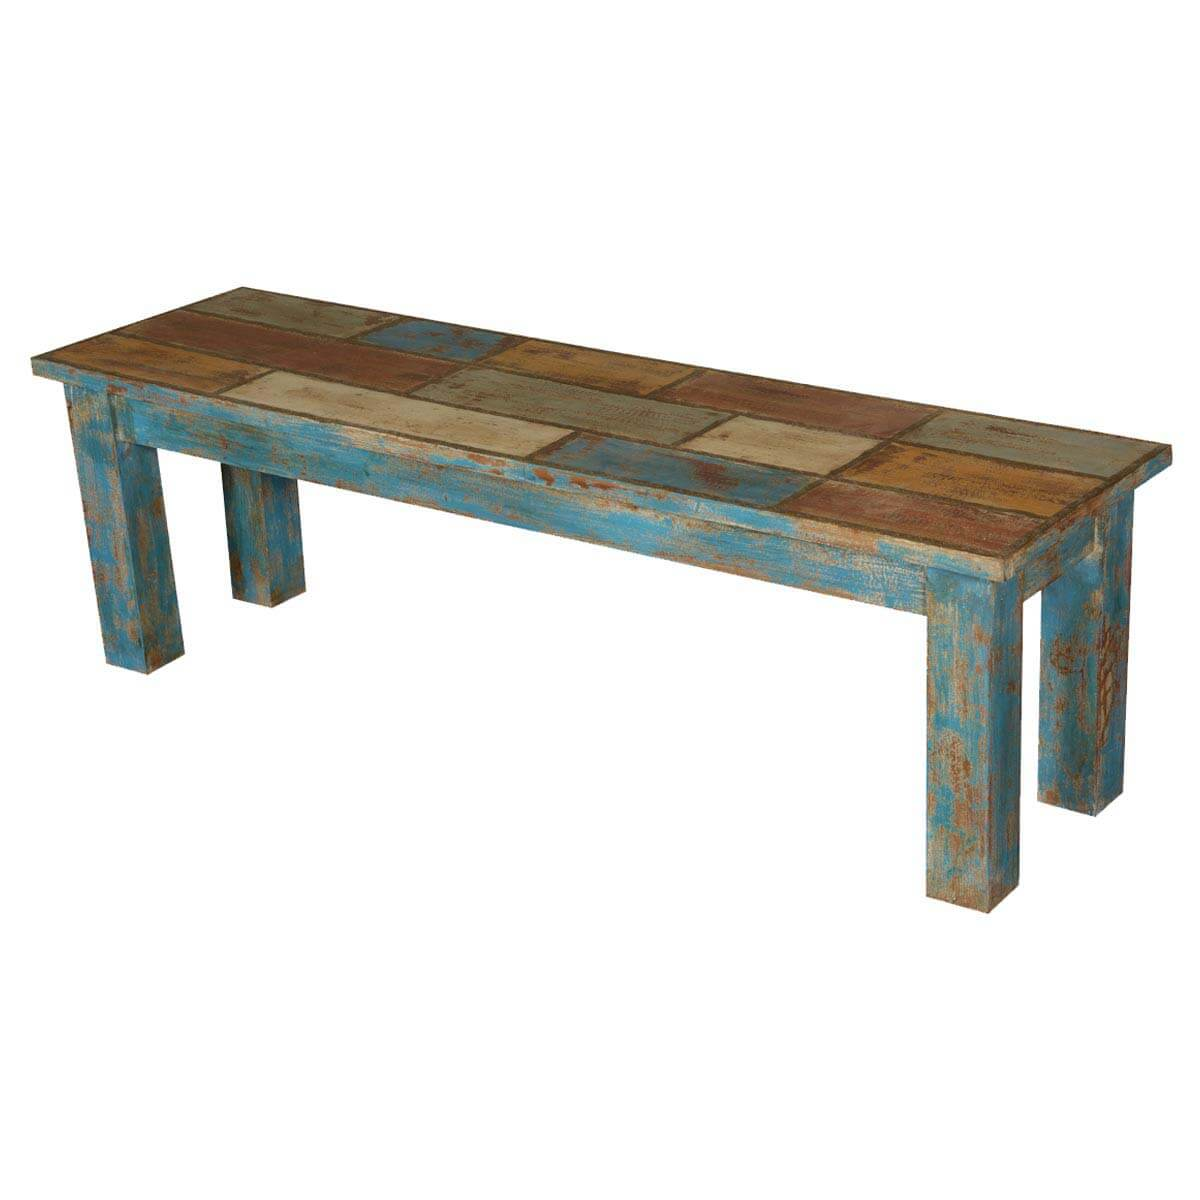 Francis Wooden Patches Distressed Acacia Wood Bench